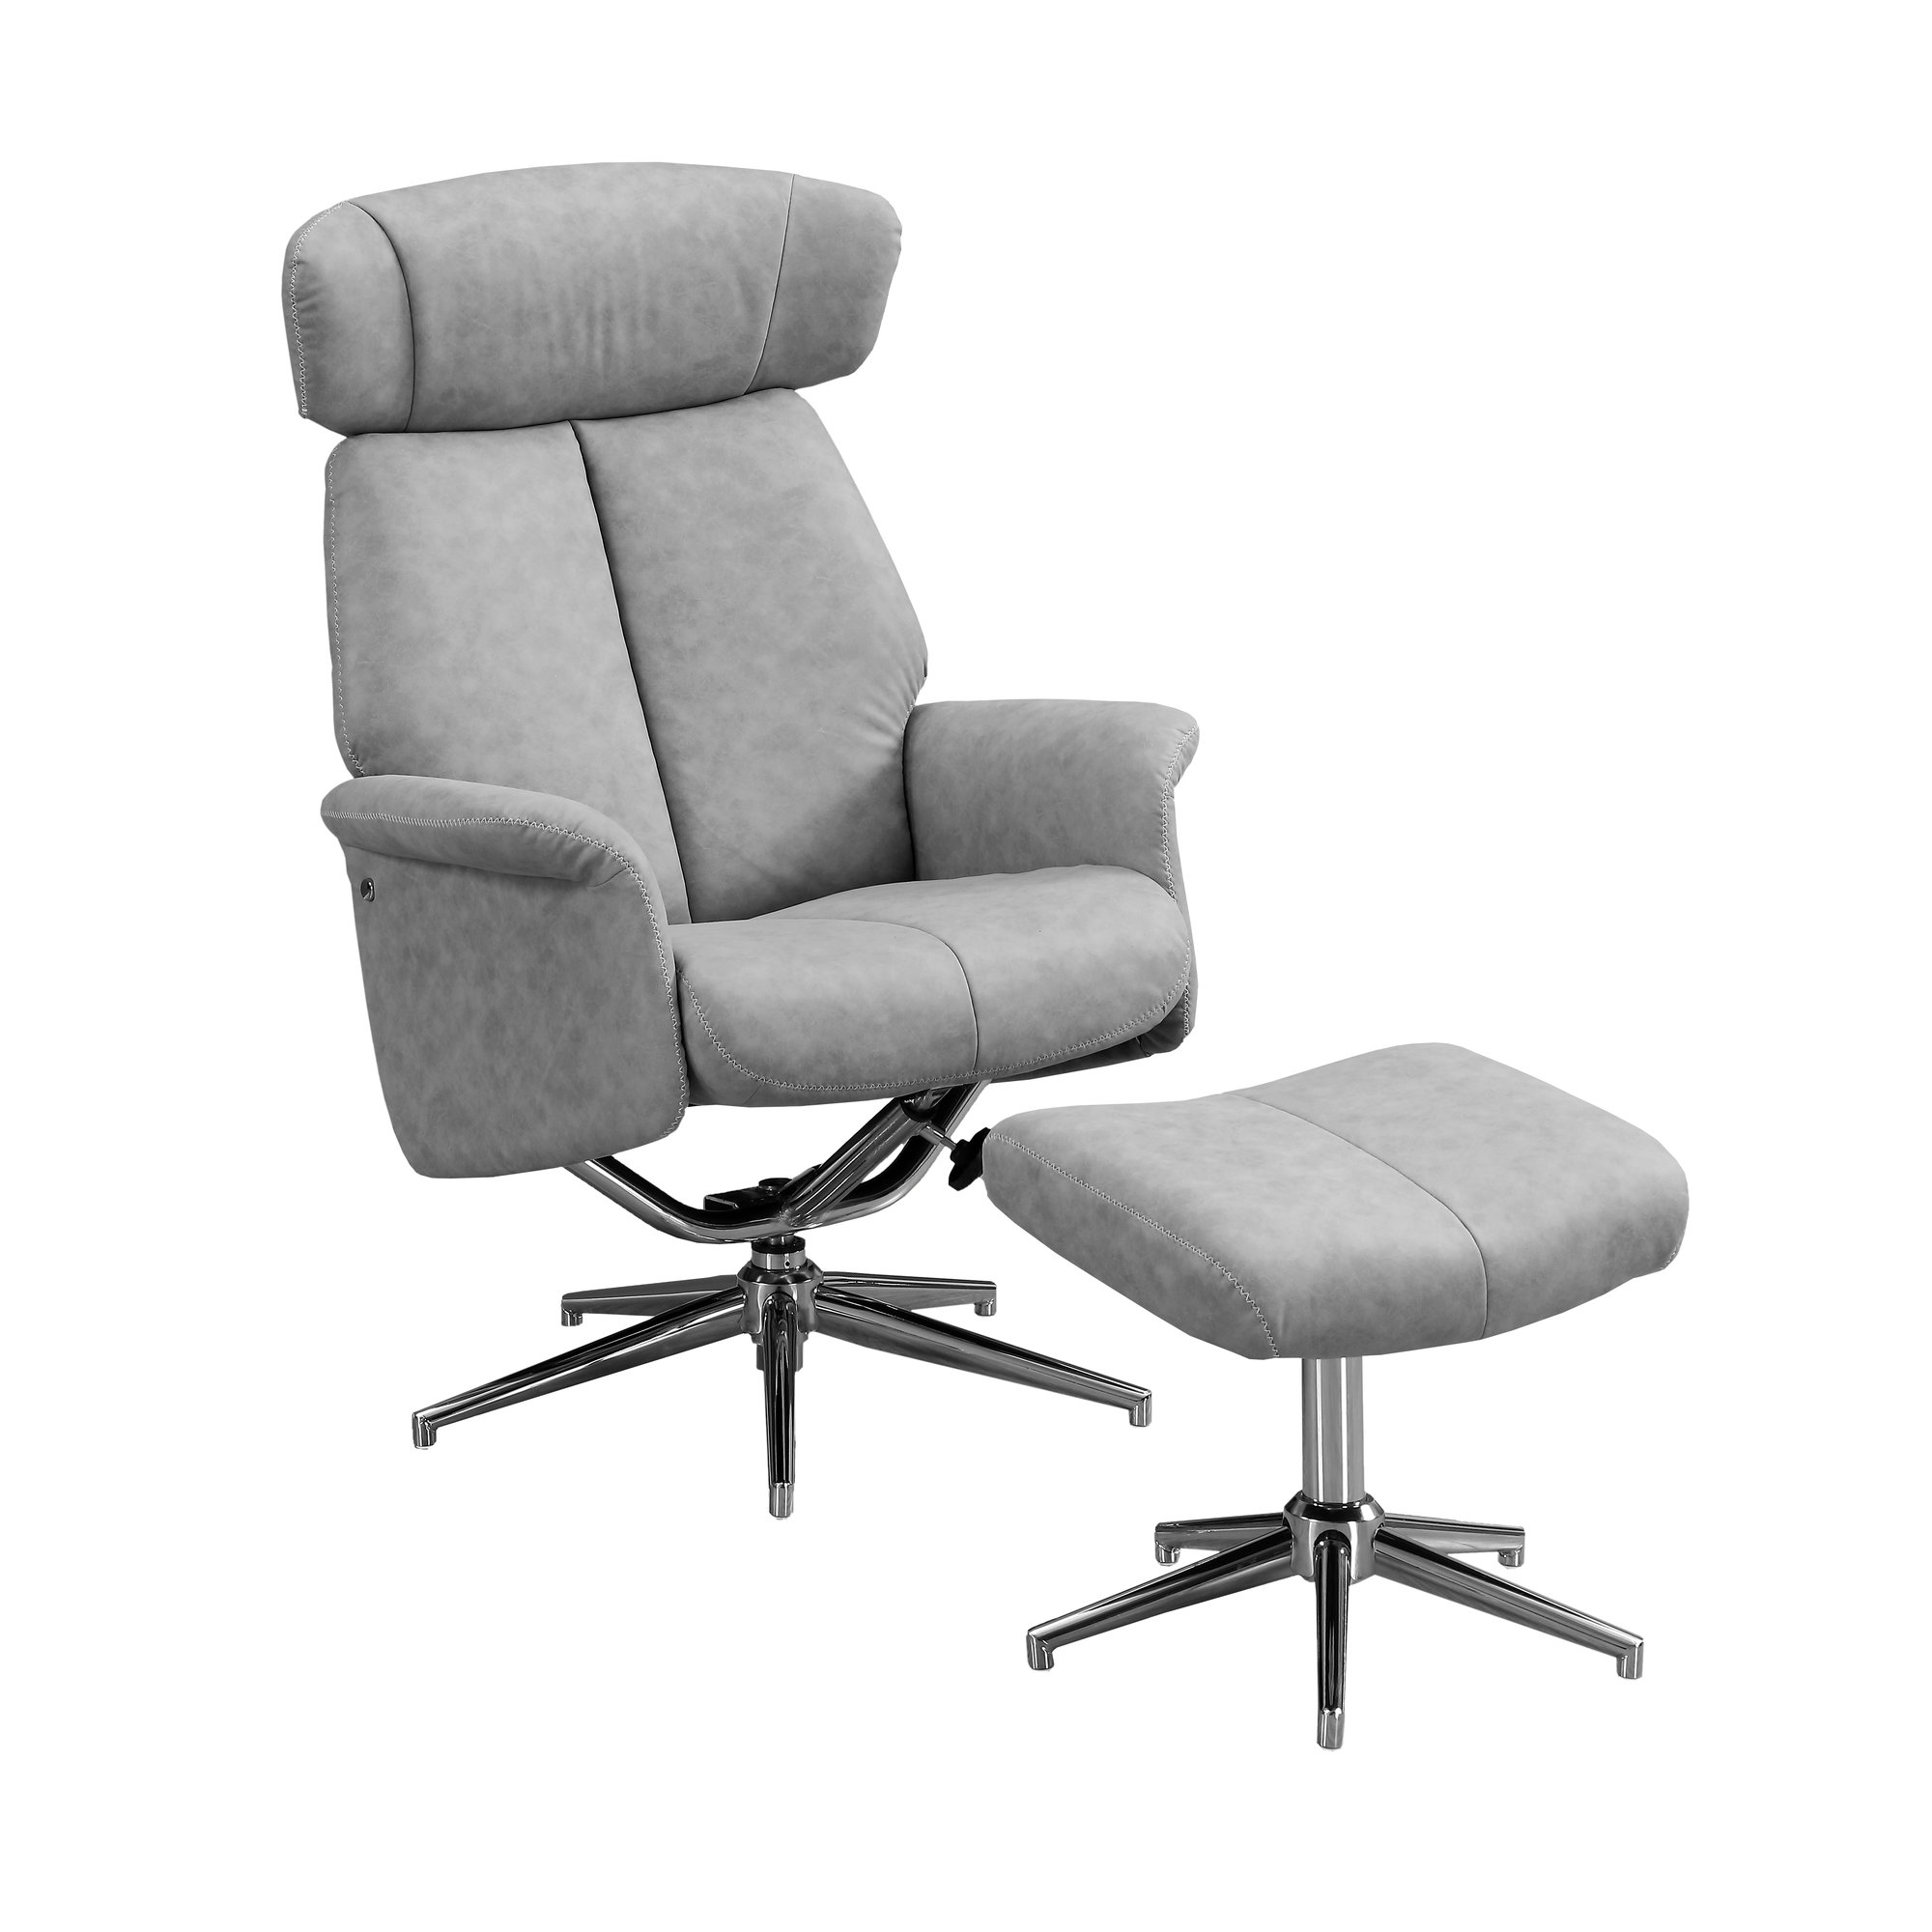 RECLINING CHAIR - 2PCS SET / GREY SWIVEL -ADJUST HEADREST